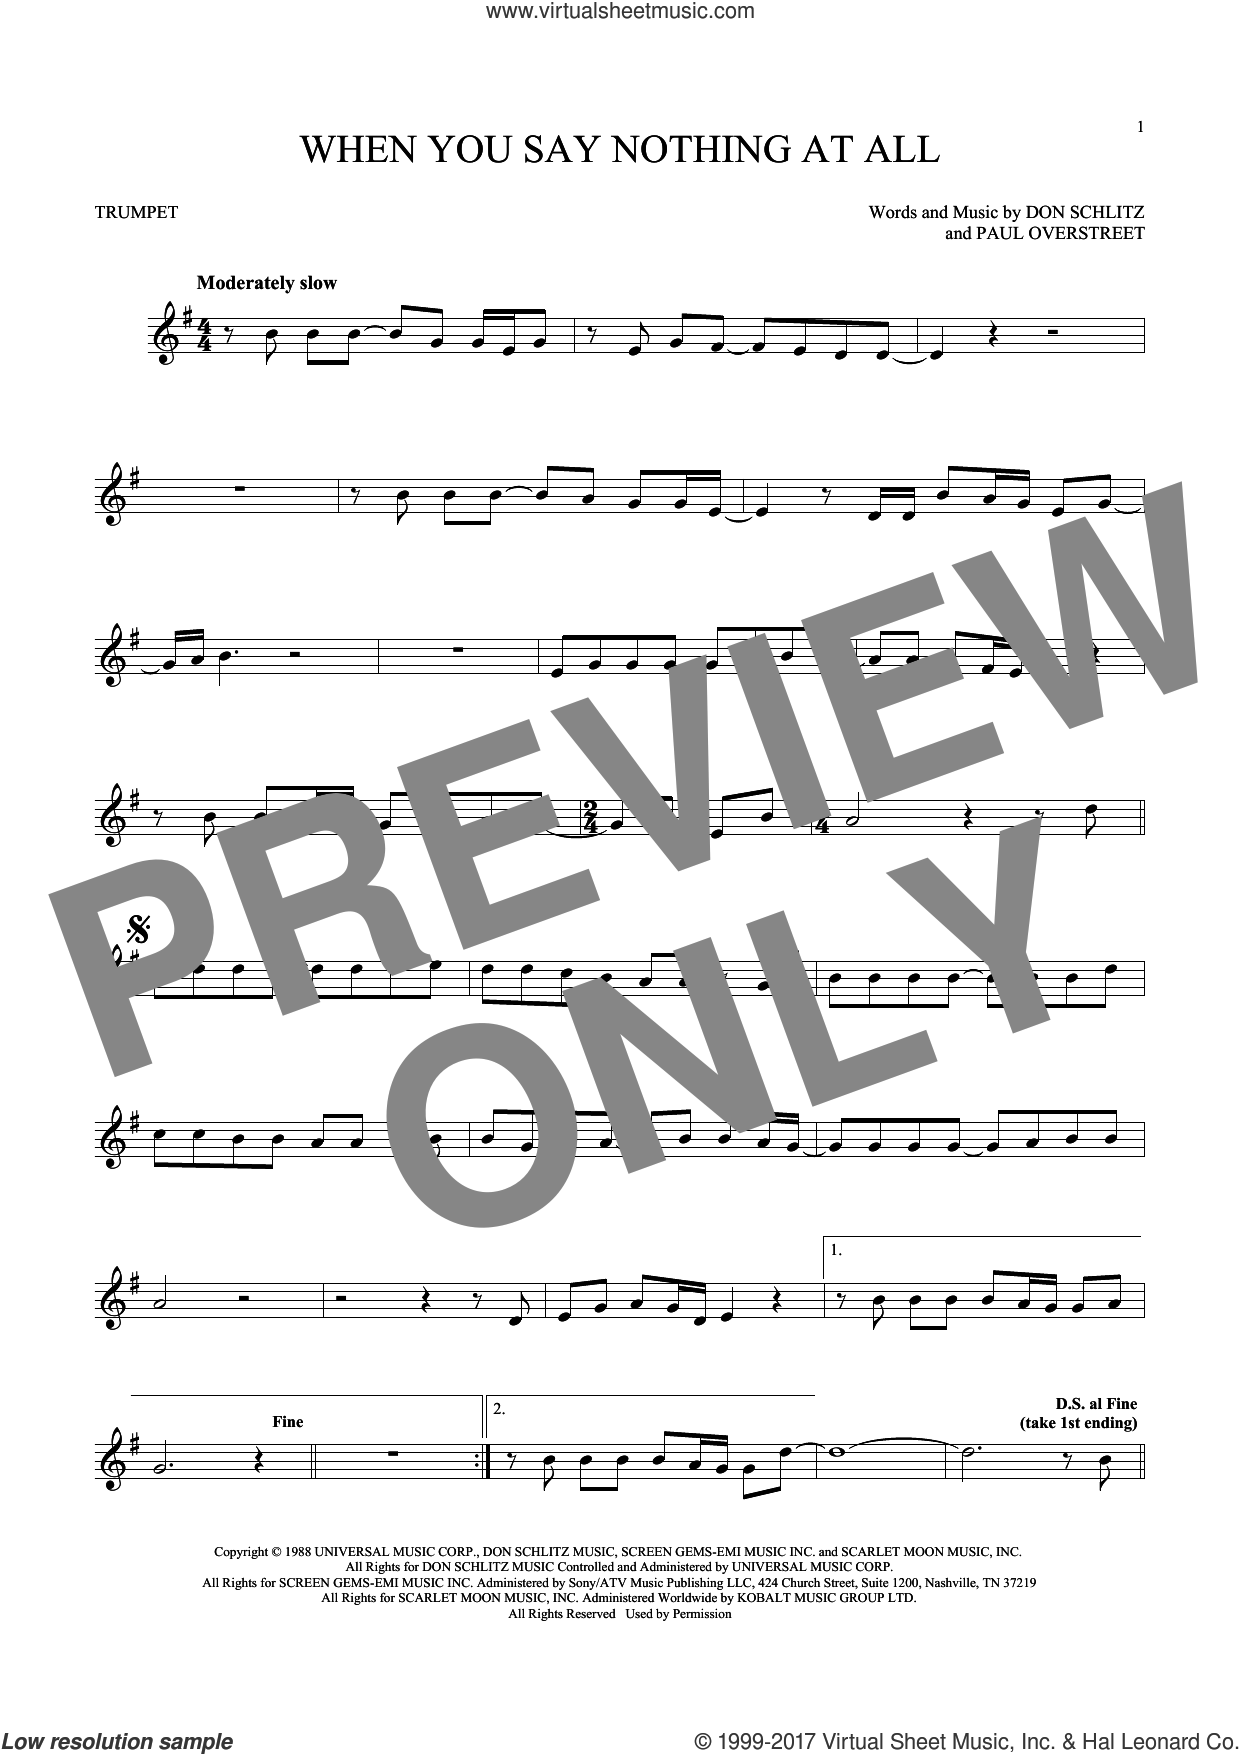 When You Say Nothing At All sheet music for trumpet solo by Alison Krauss & Union Station, Keith Whitley, Don Schlitz and Paul Overstreet, wedding score, intermediate skill level